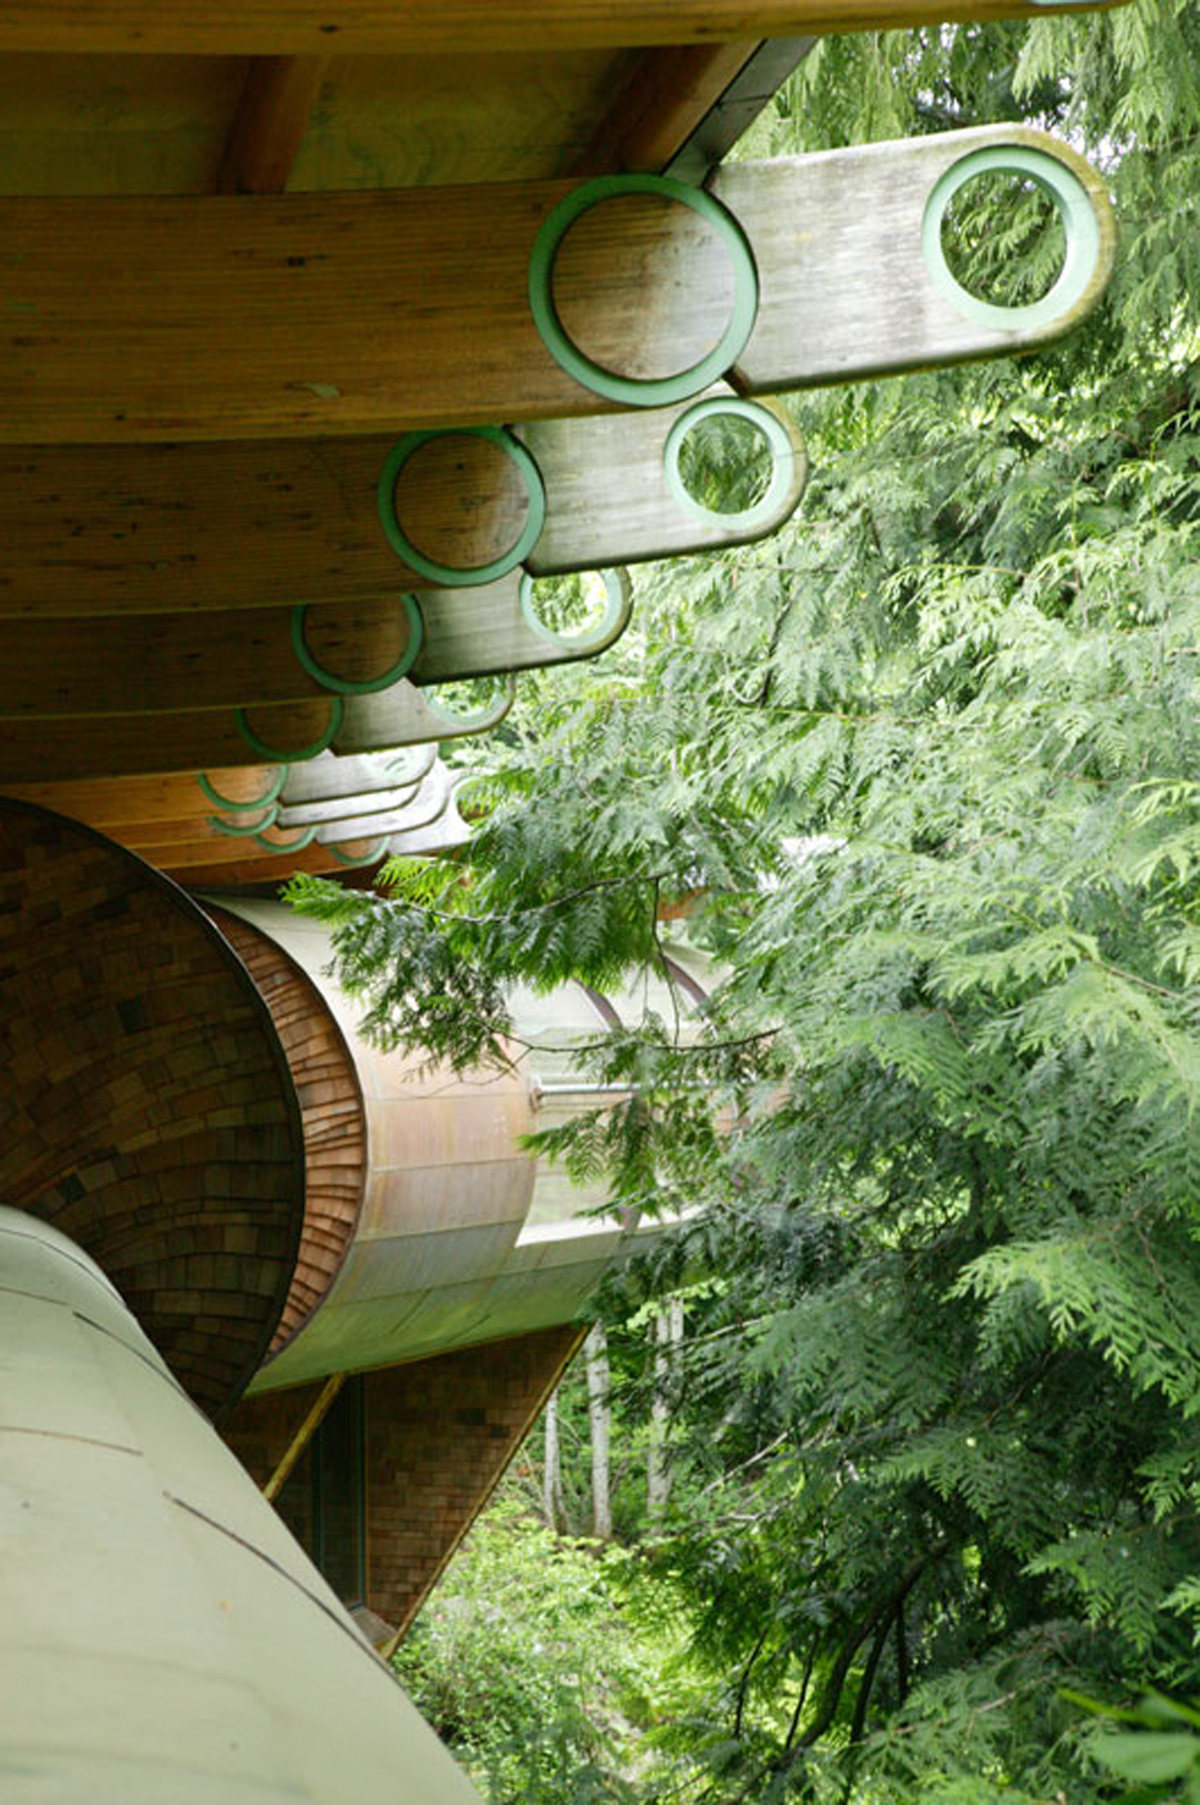 Ergonomic Wooden Tree House Designs with Contemporary Inspirations ...